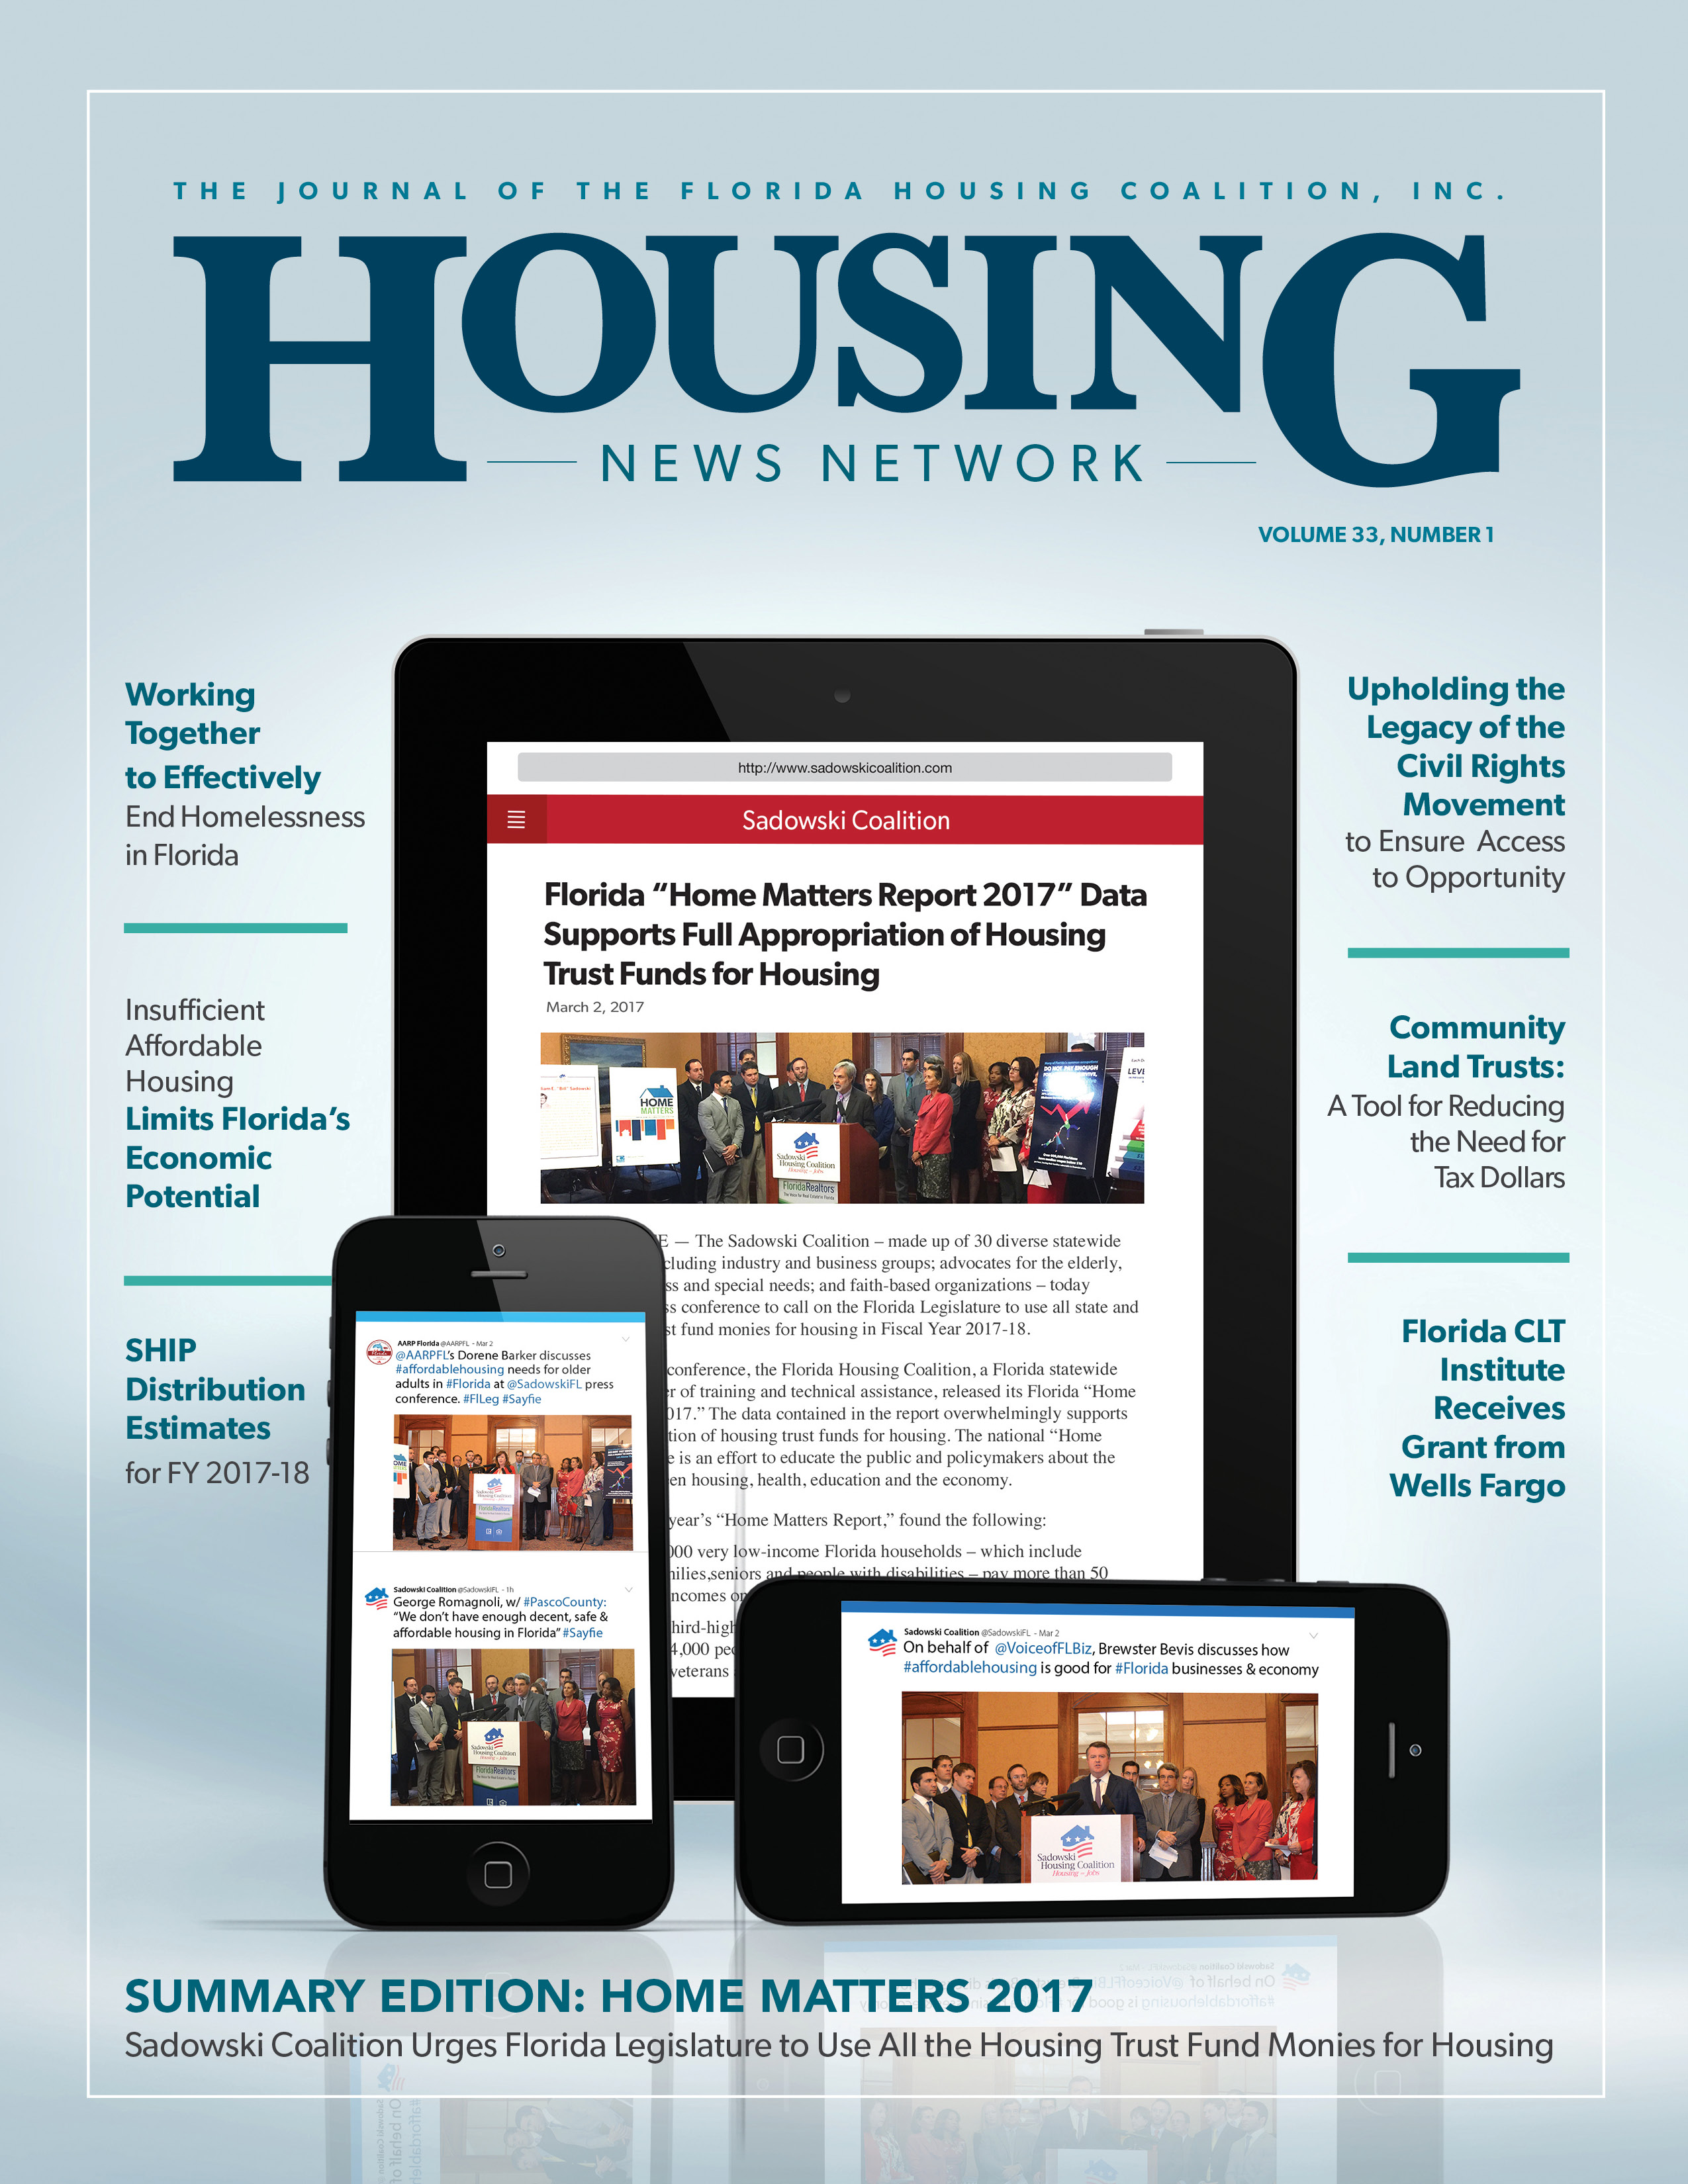 Housing News Network, Vol. 33, No. 1